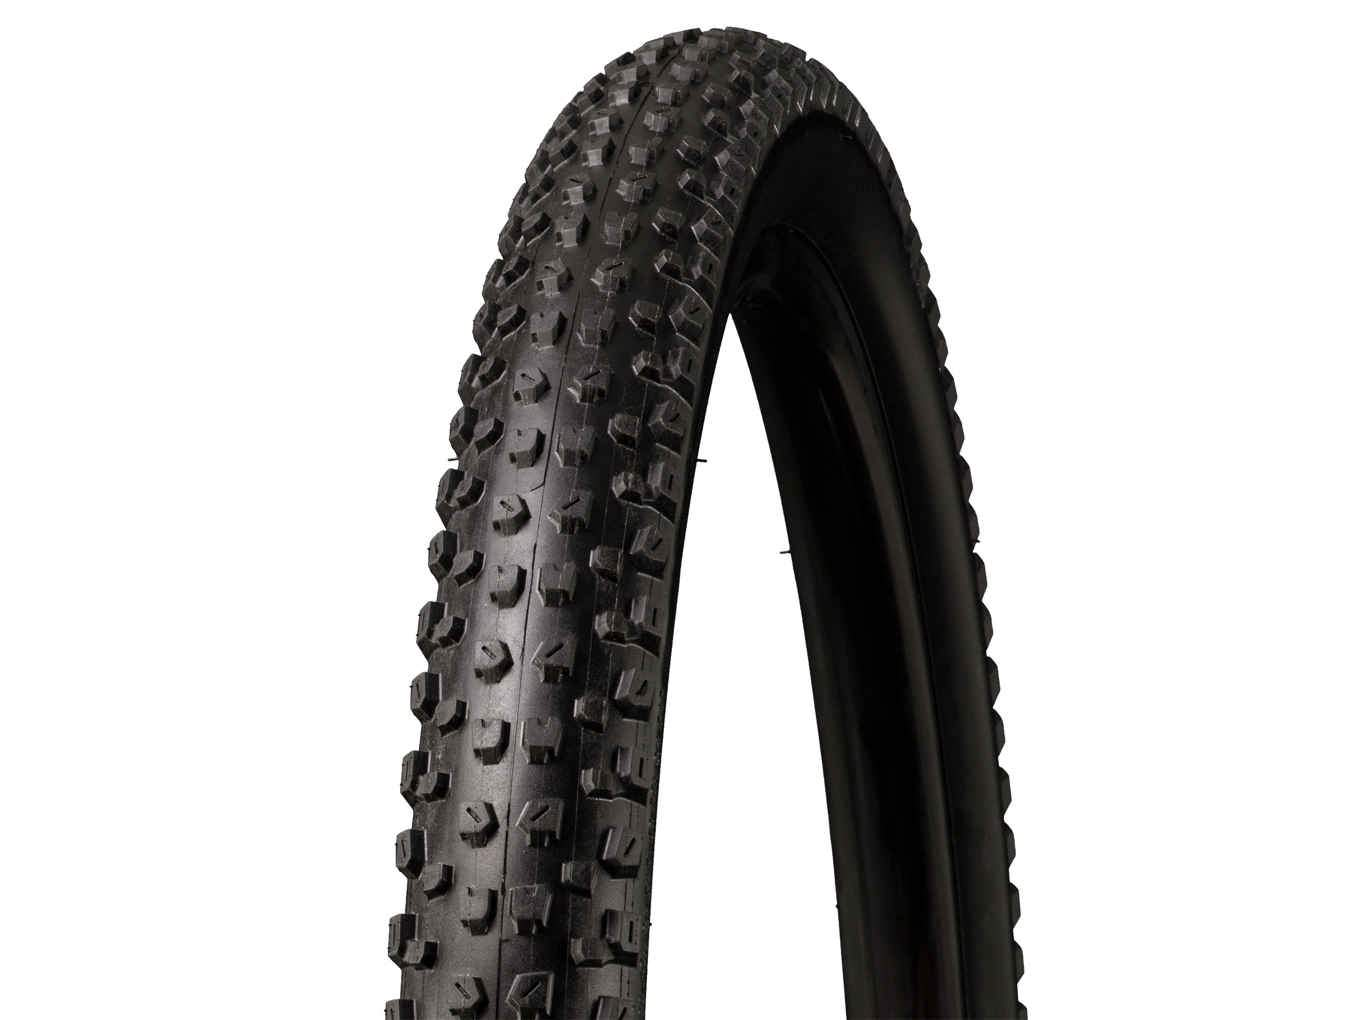 Bontrager XR3 Team Issue TLR Tyre